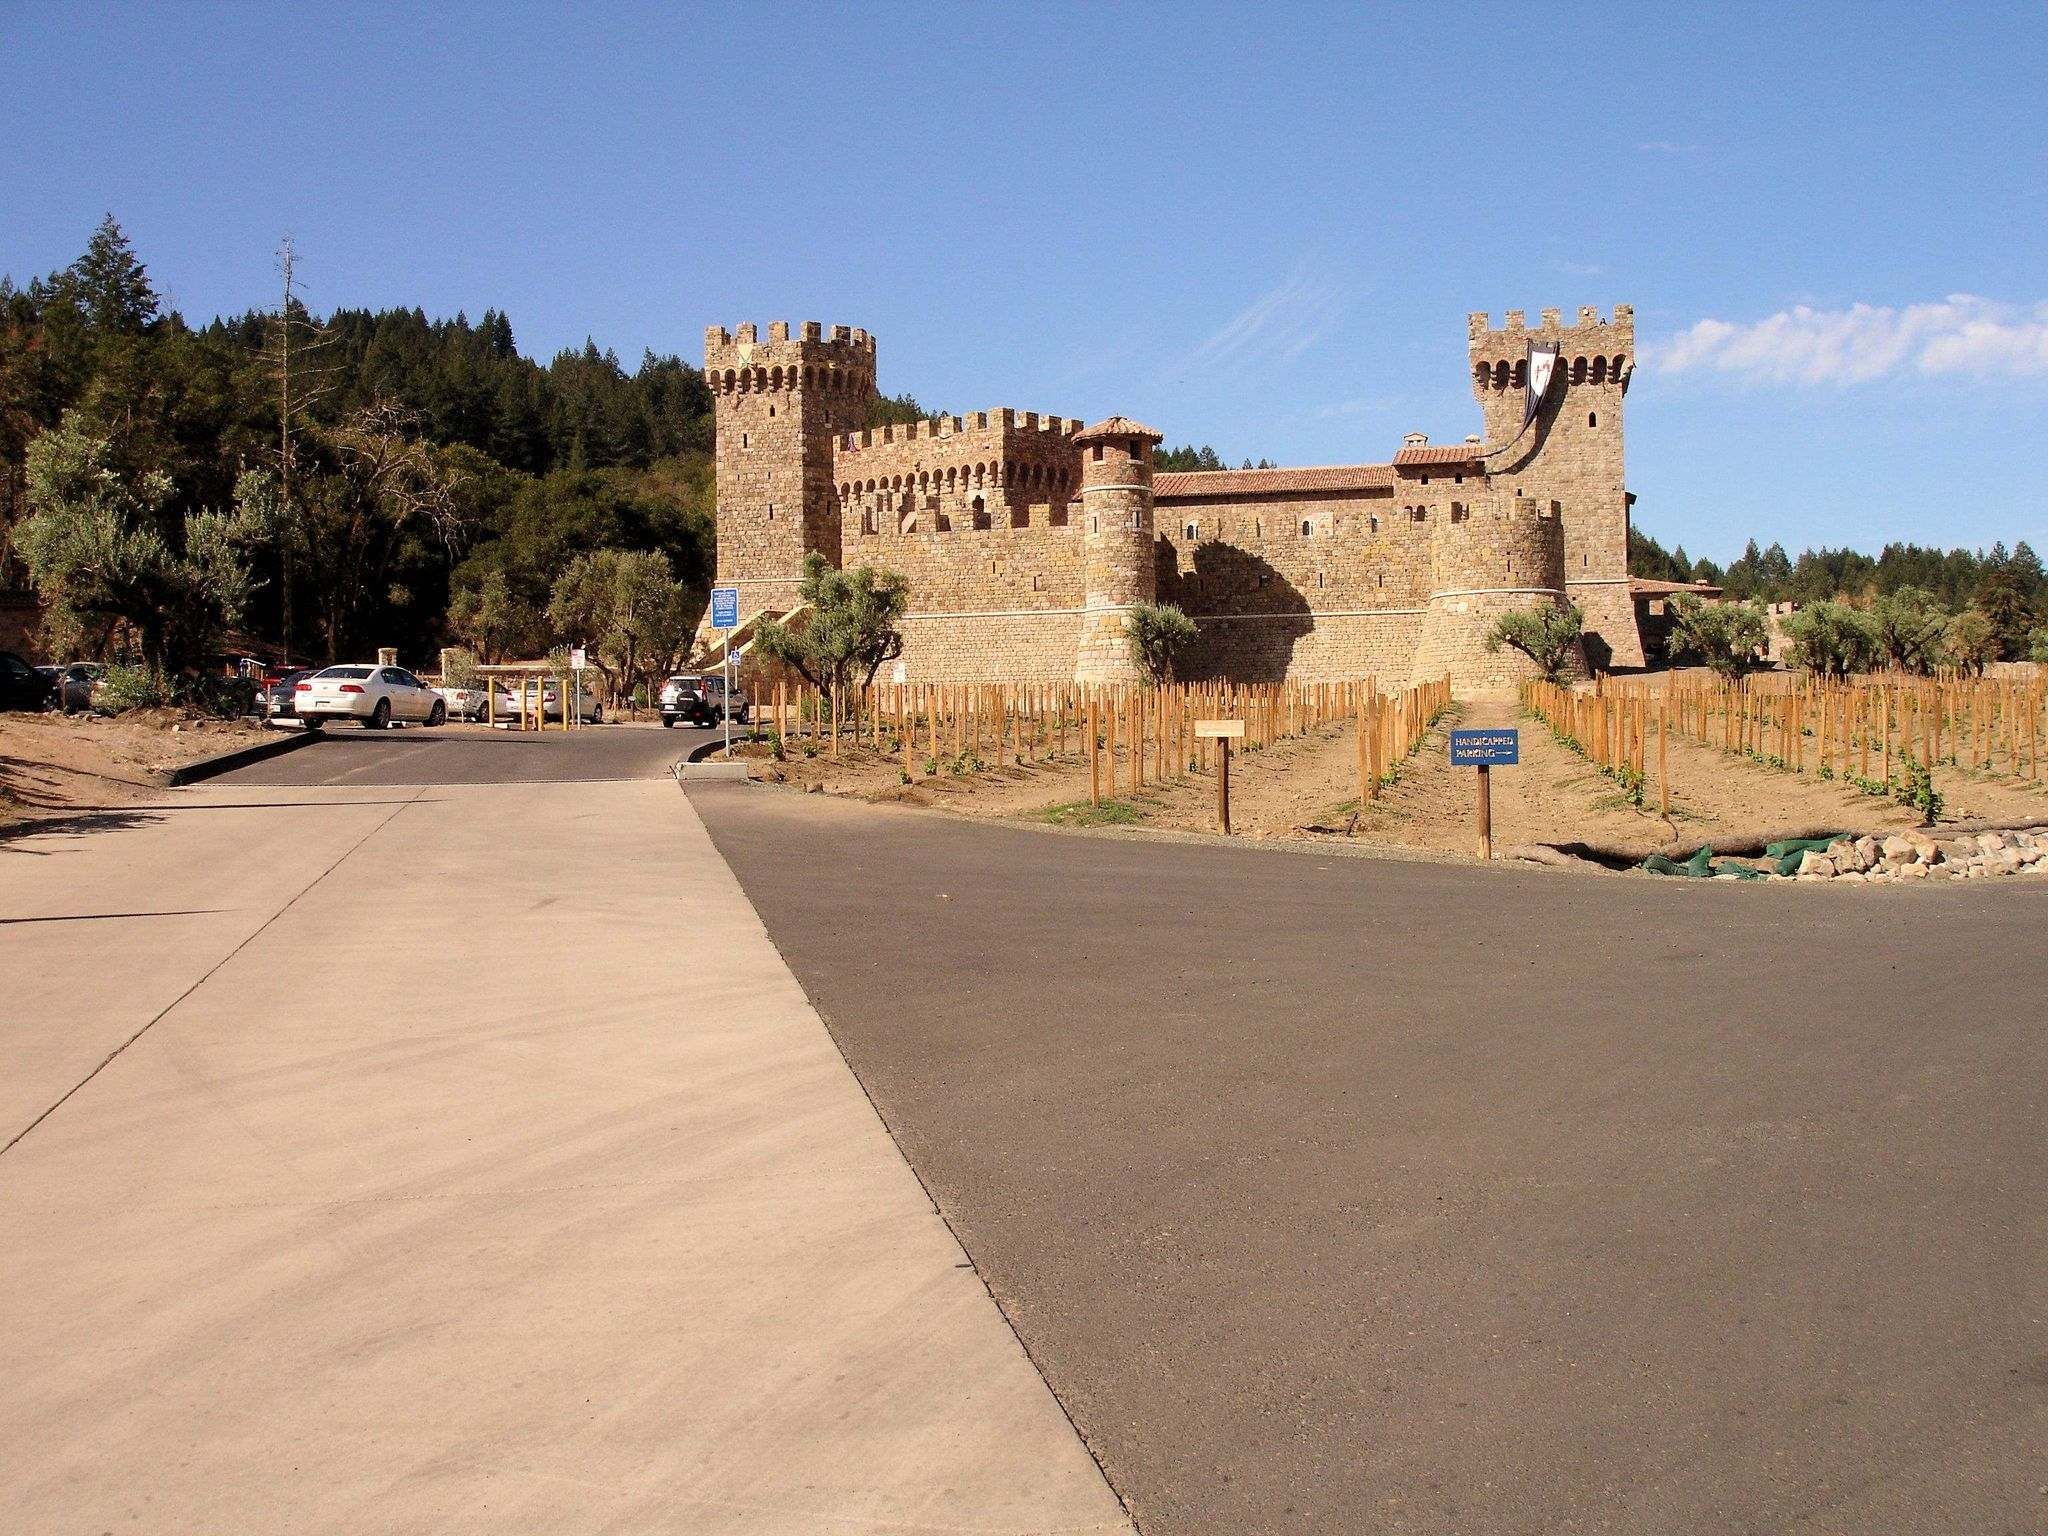 castello di amorosa11 Castello di Amorosa Winery in Napa Valley, California